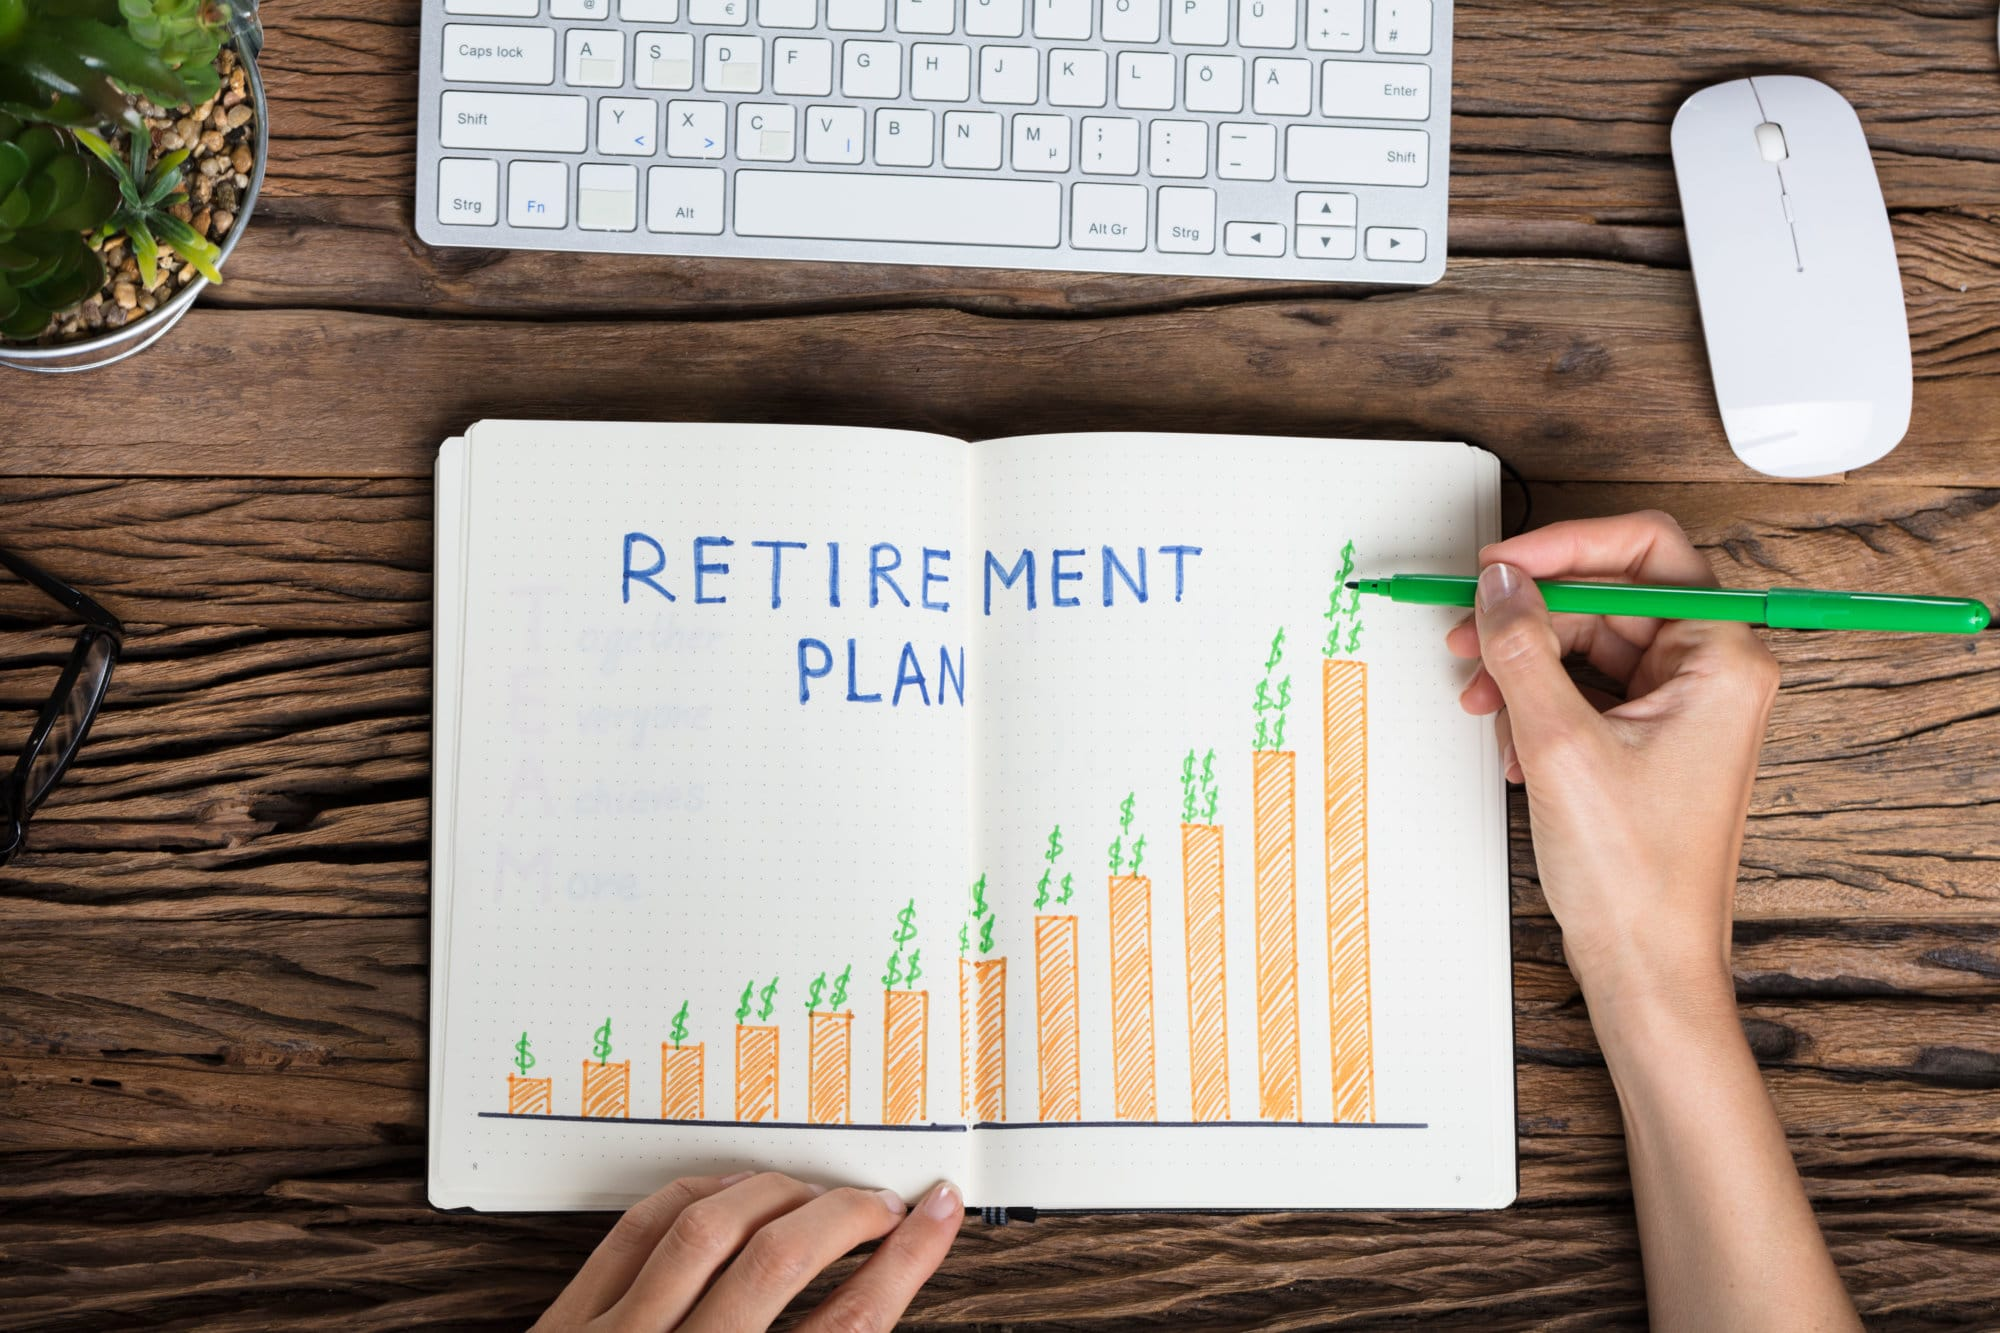 10 painless ways to save more for retirement